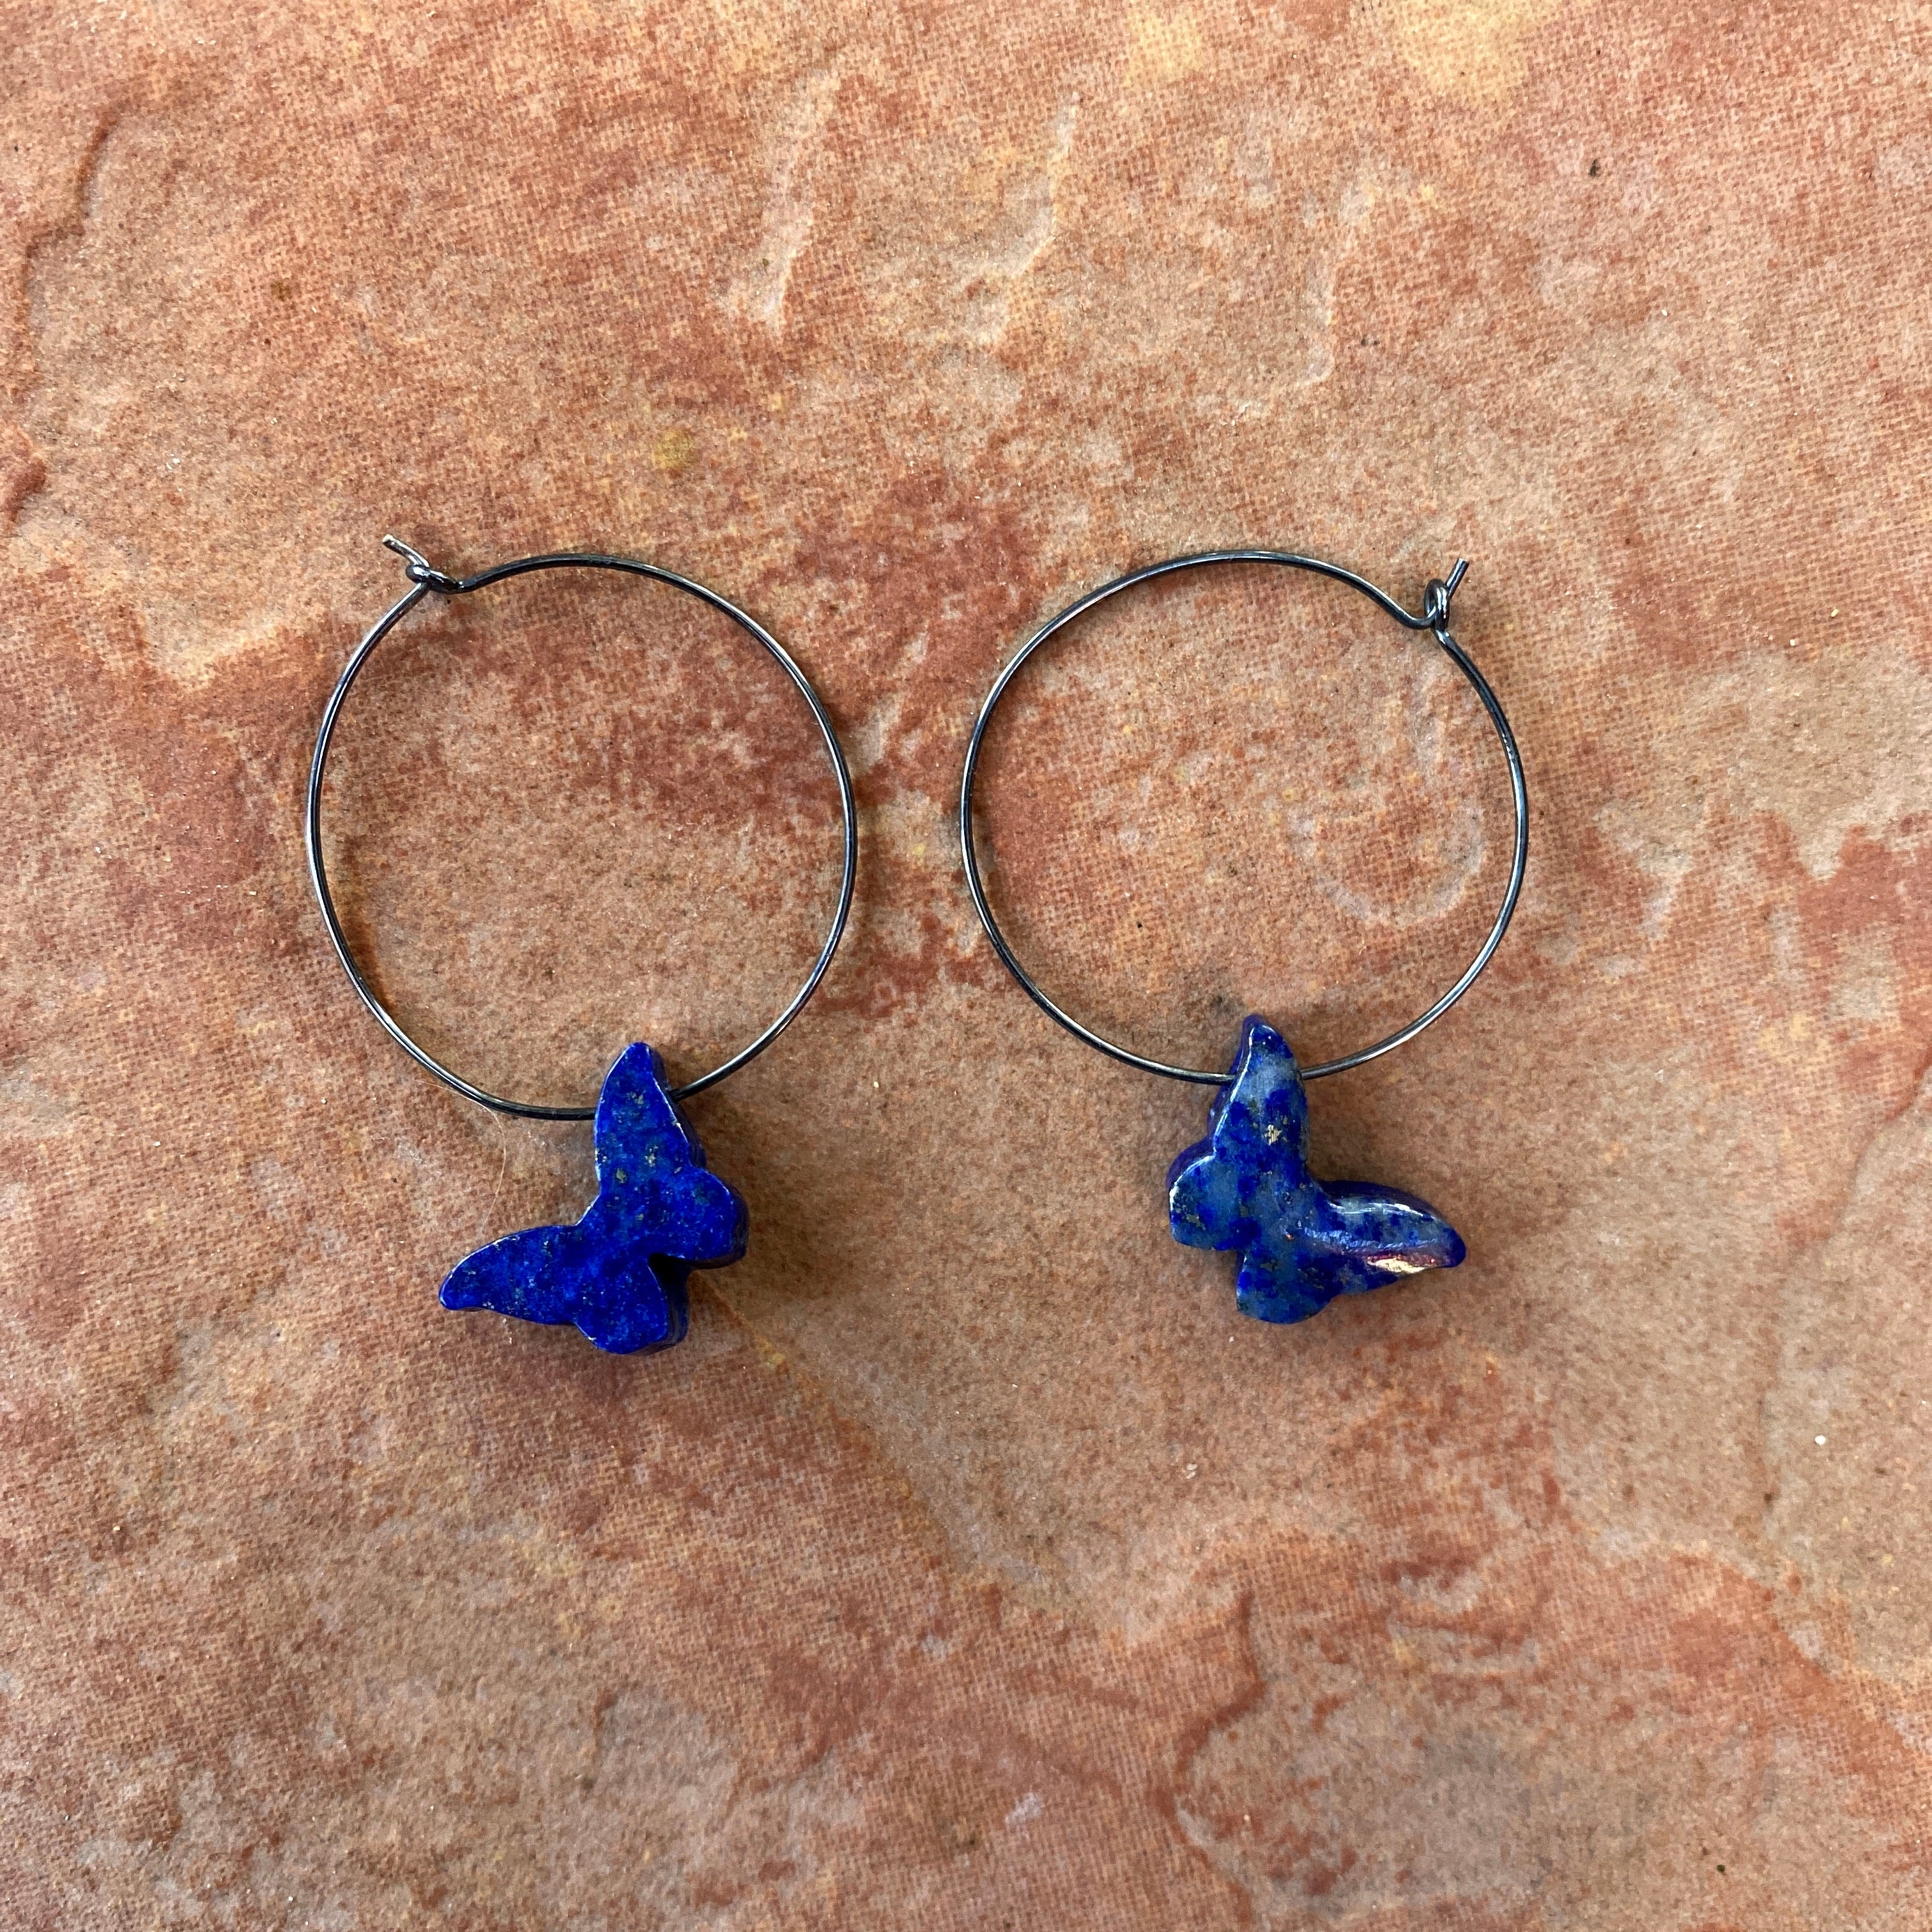 Oxidized Sterling silver hoops with Lapis Lazuli Gemstone butterflies